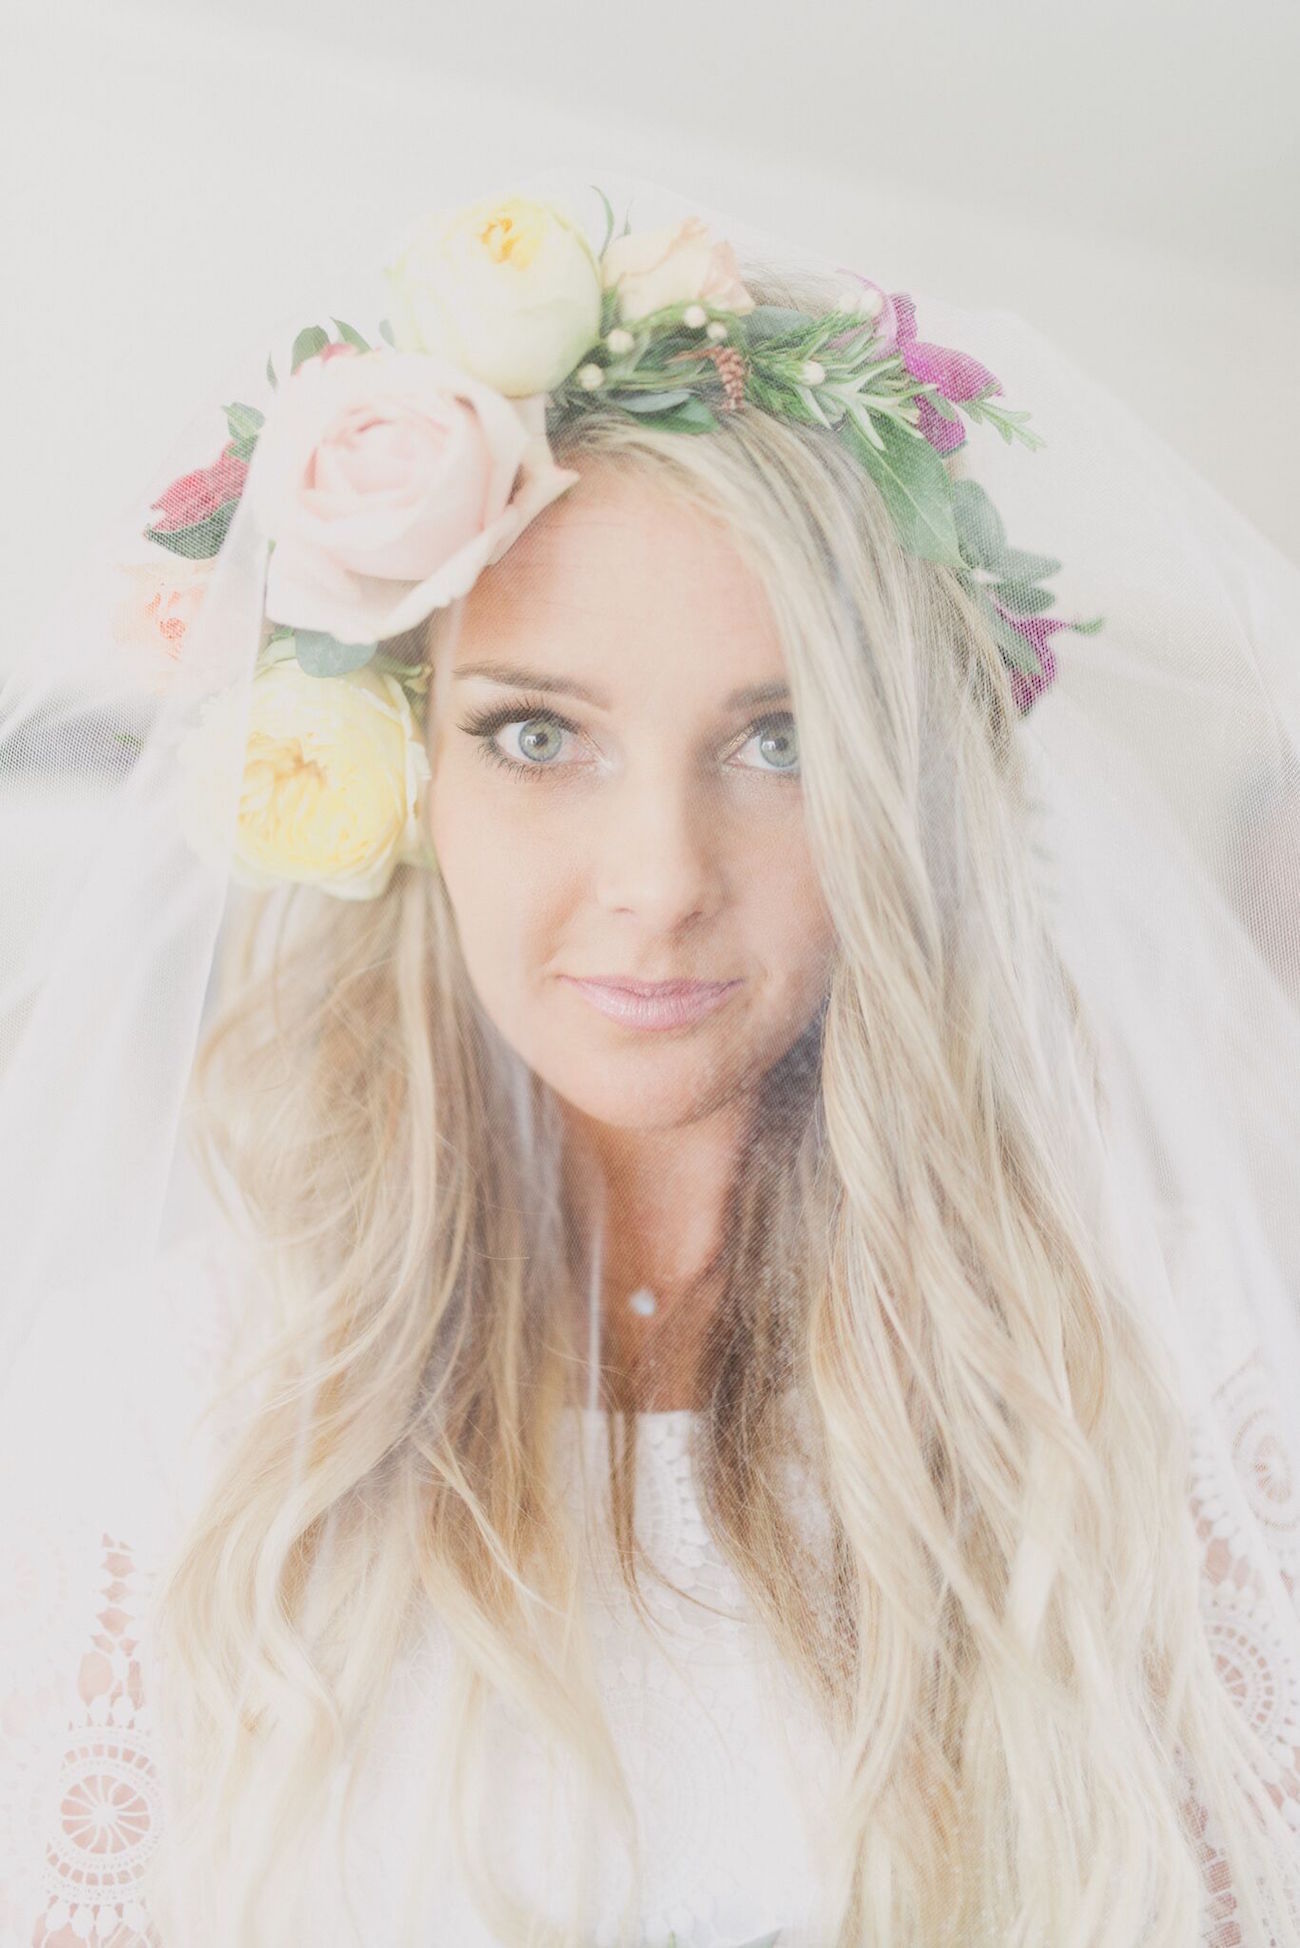 Bride in Flower Crown and Veil | Credit: Vicky Bergallo